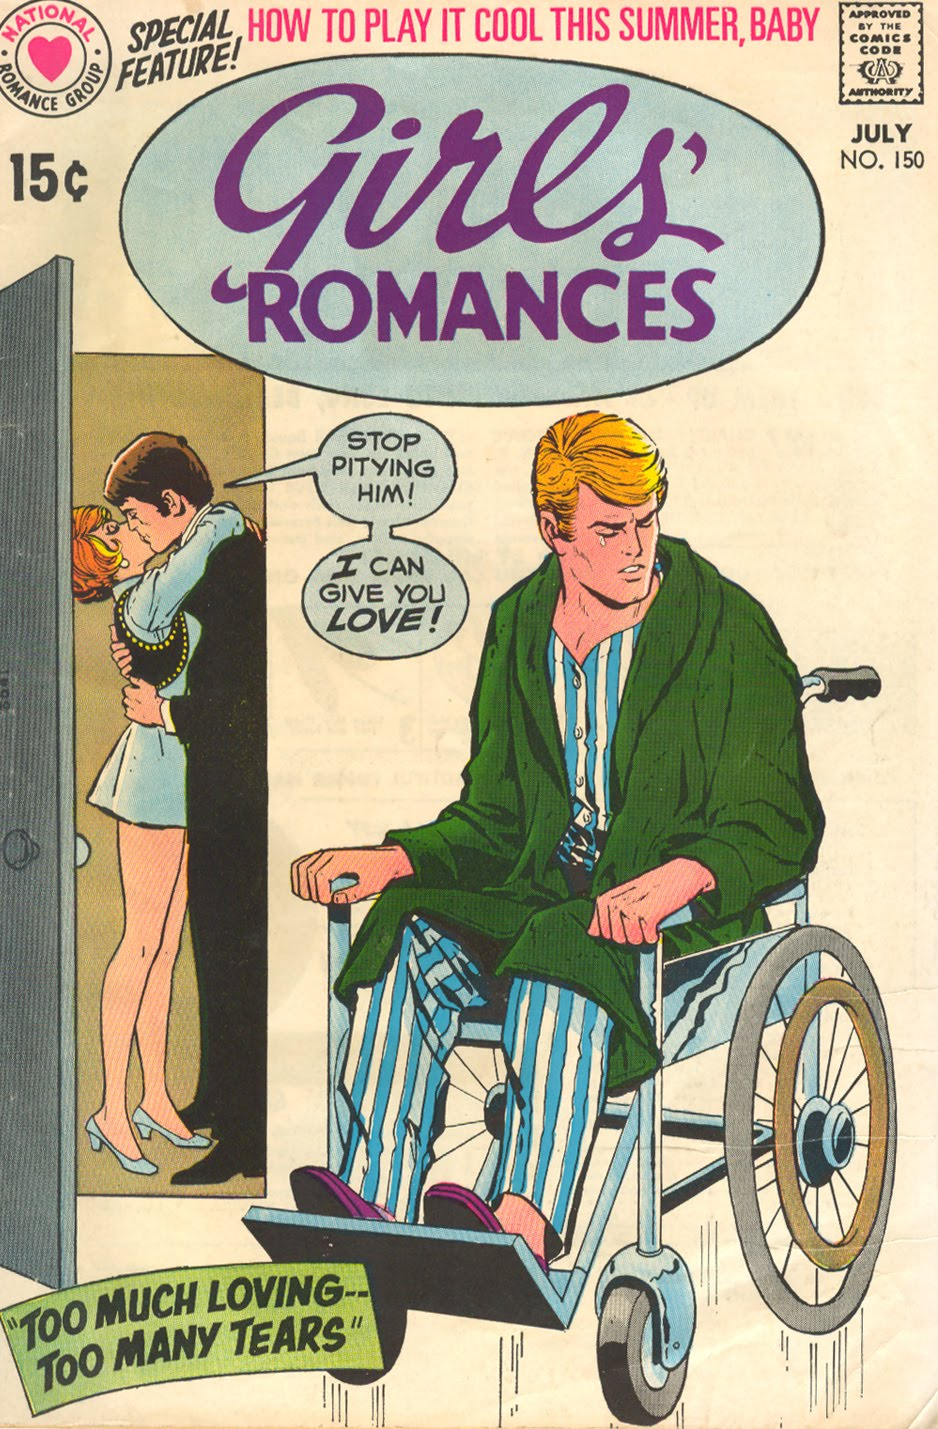 """DIAGNOSIS: Knee injury as a result of a football accident (yes, even guys can be pitied) """"Too Much Loving... Too Many Tears!""""  Girls' Romances  #150 (July 1970) Cover pencils by Nick Cardy, inks by Vince Colletta"""